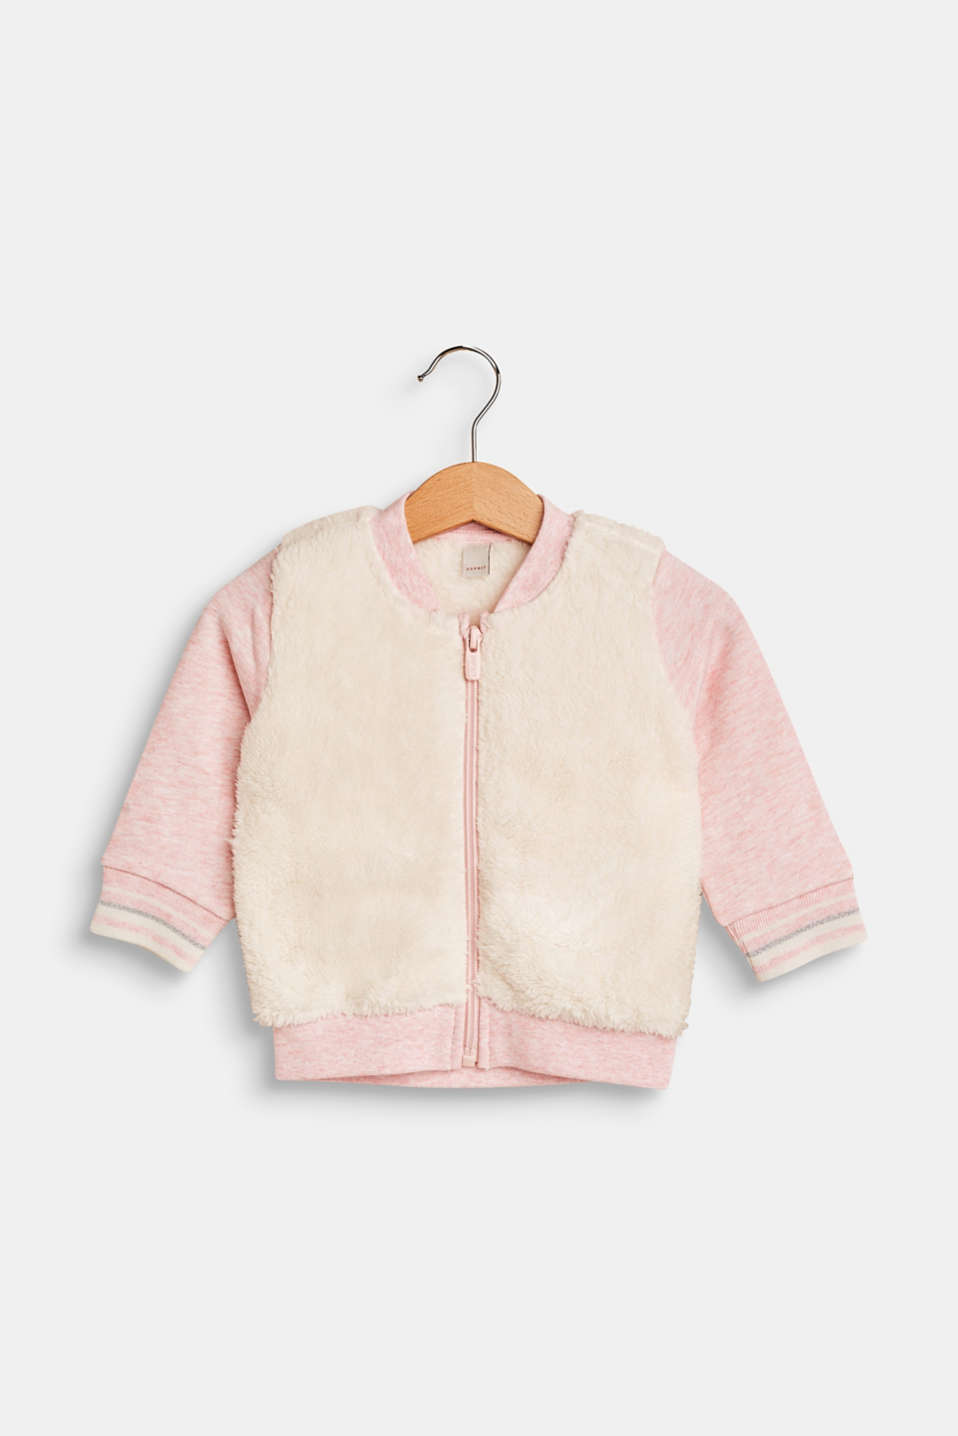 Esprit - Plush detail sweatshirt cardigan